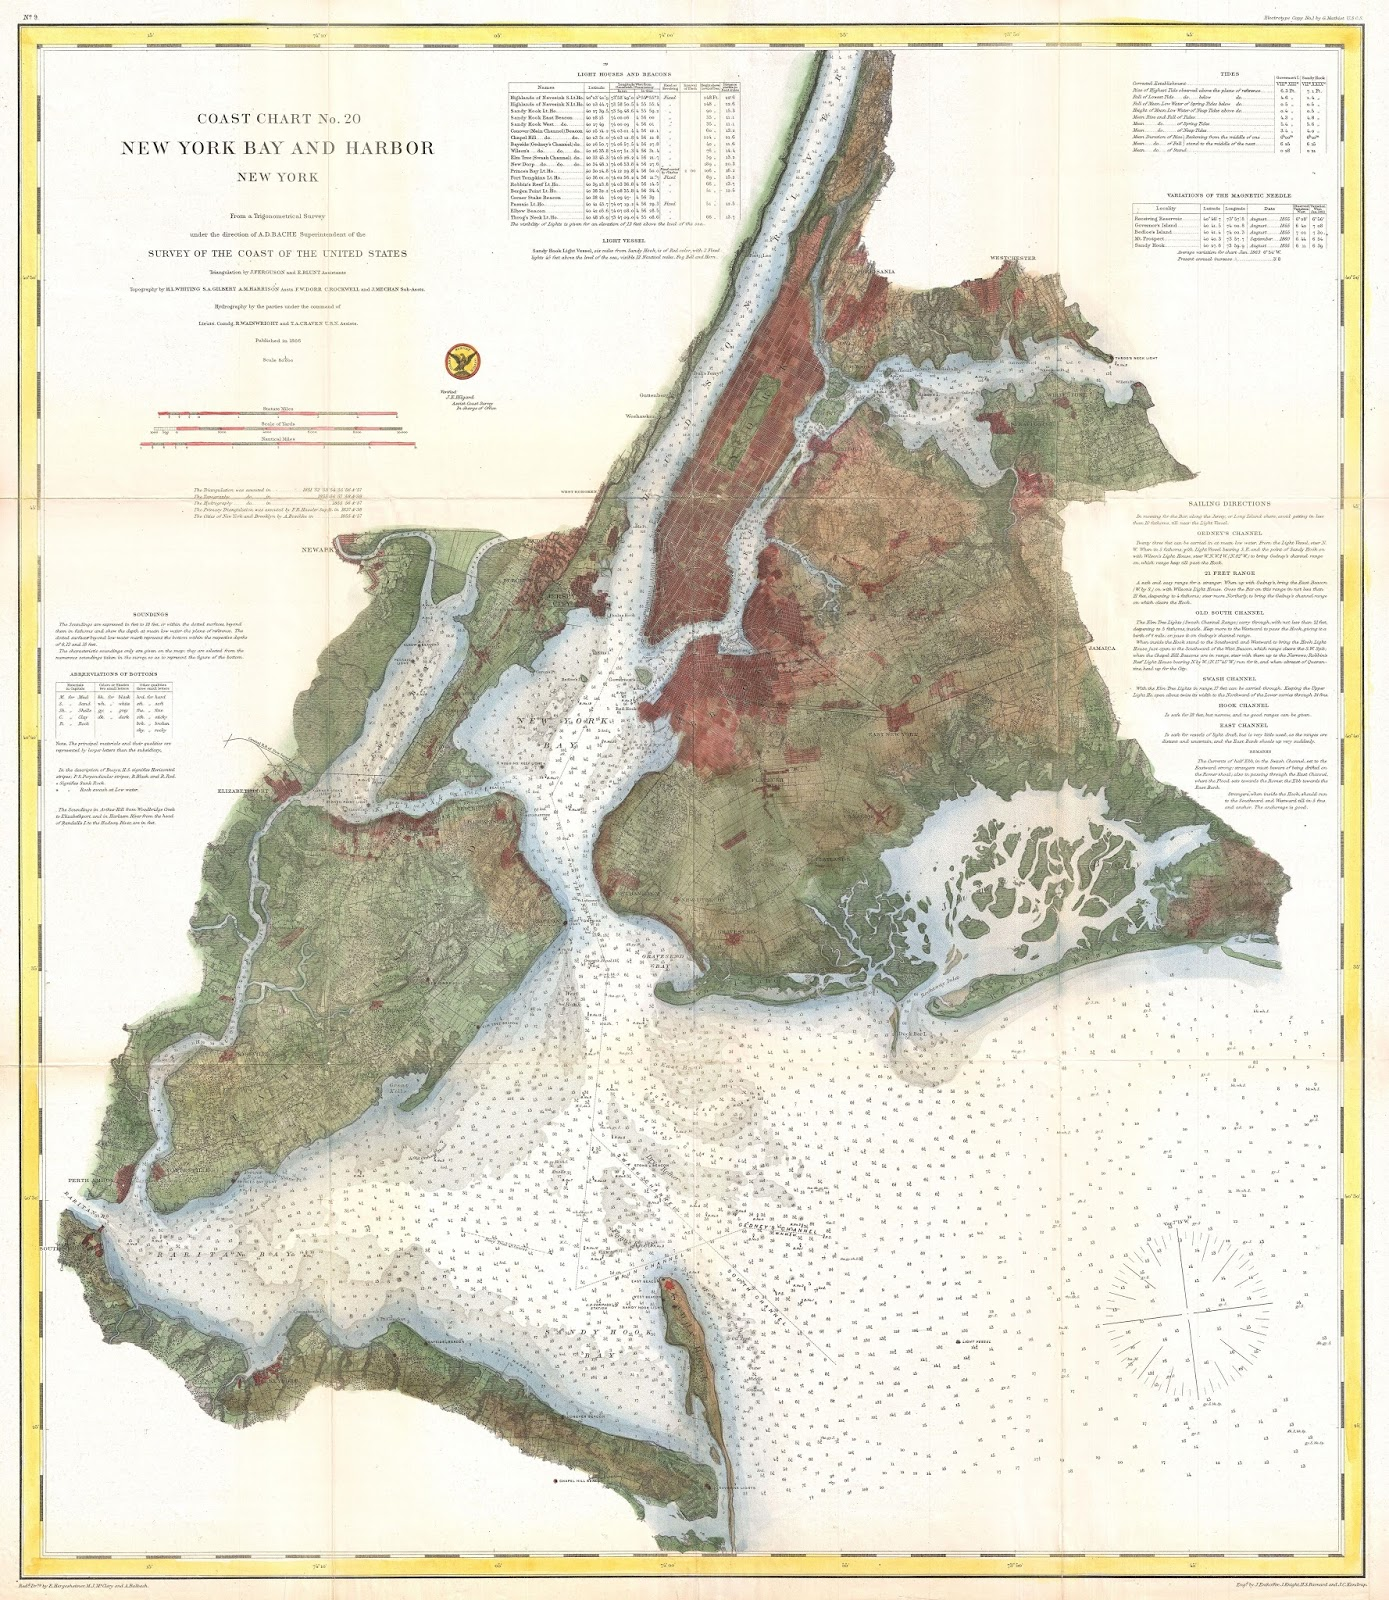 Coast Survey Nautical Chart of Map of New York City & Harbor (1866)